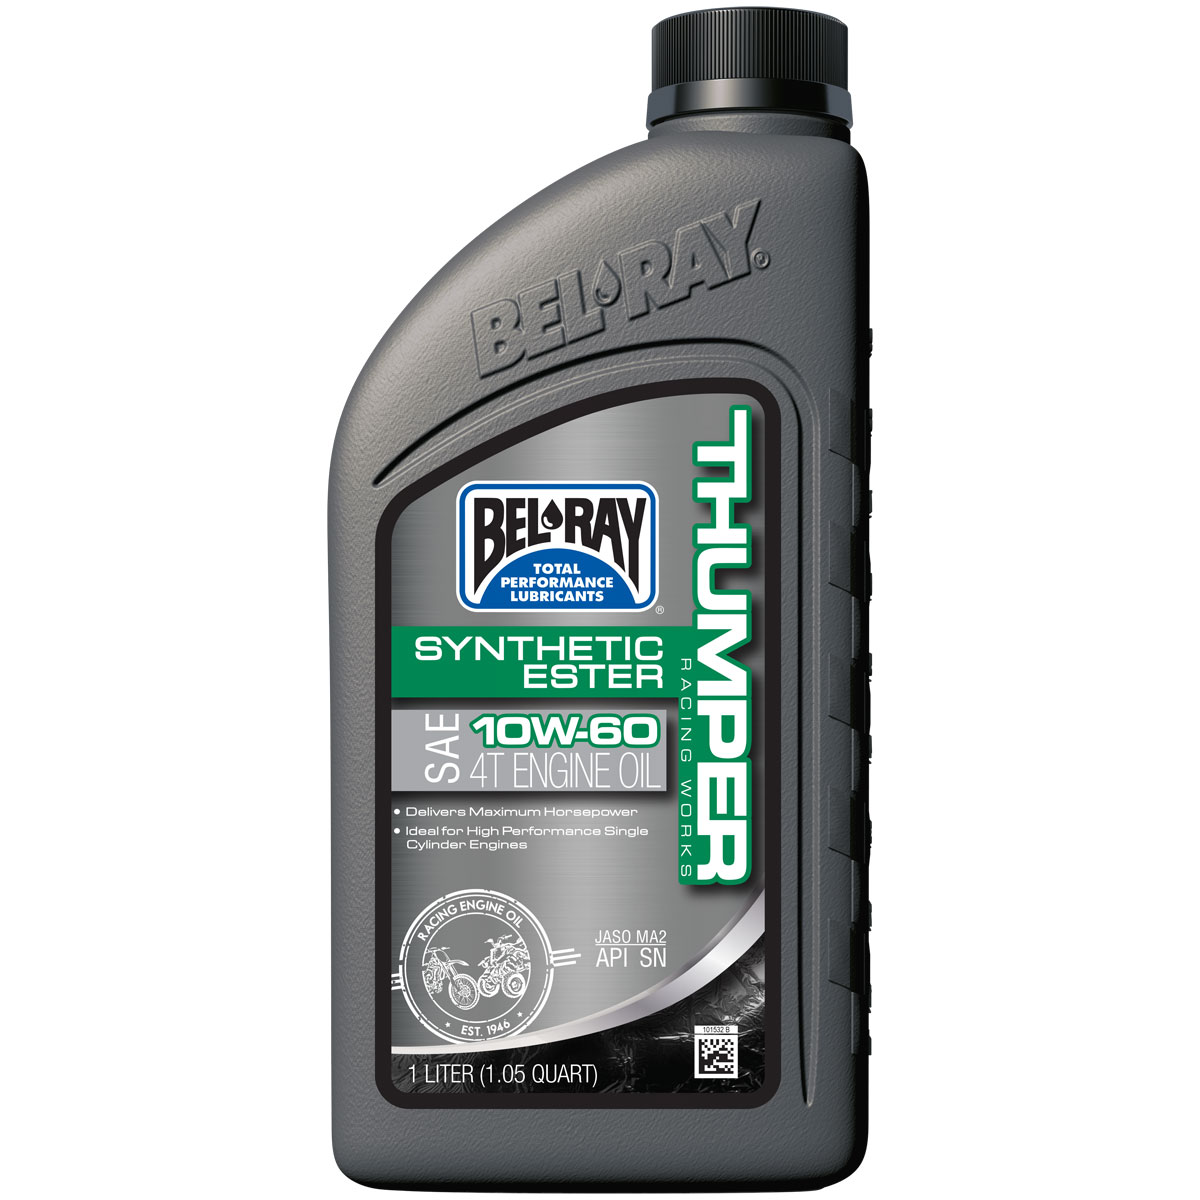 Bel-Ray Works Thumper Racing Synthetic Ester 4T 10W60 Engine Oil 1 Liter